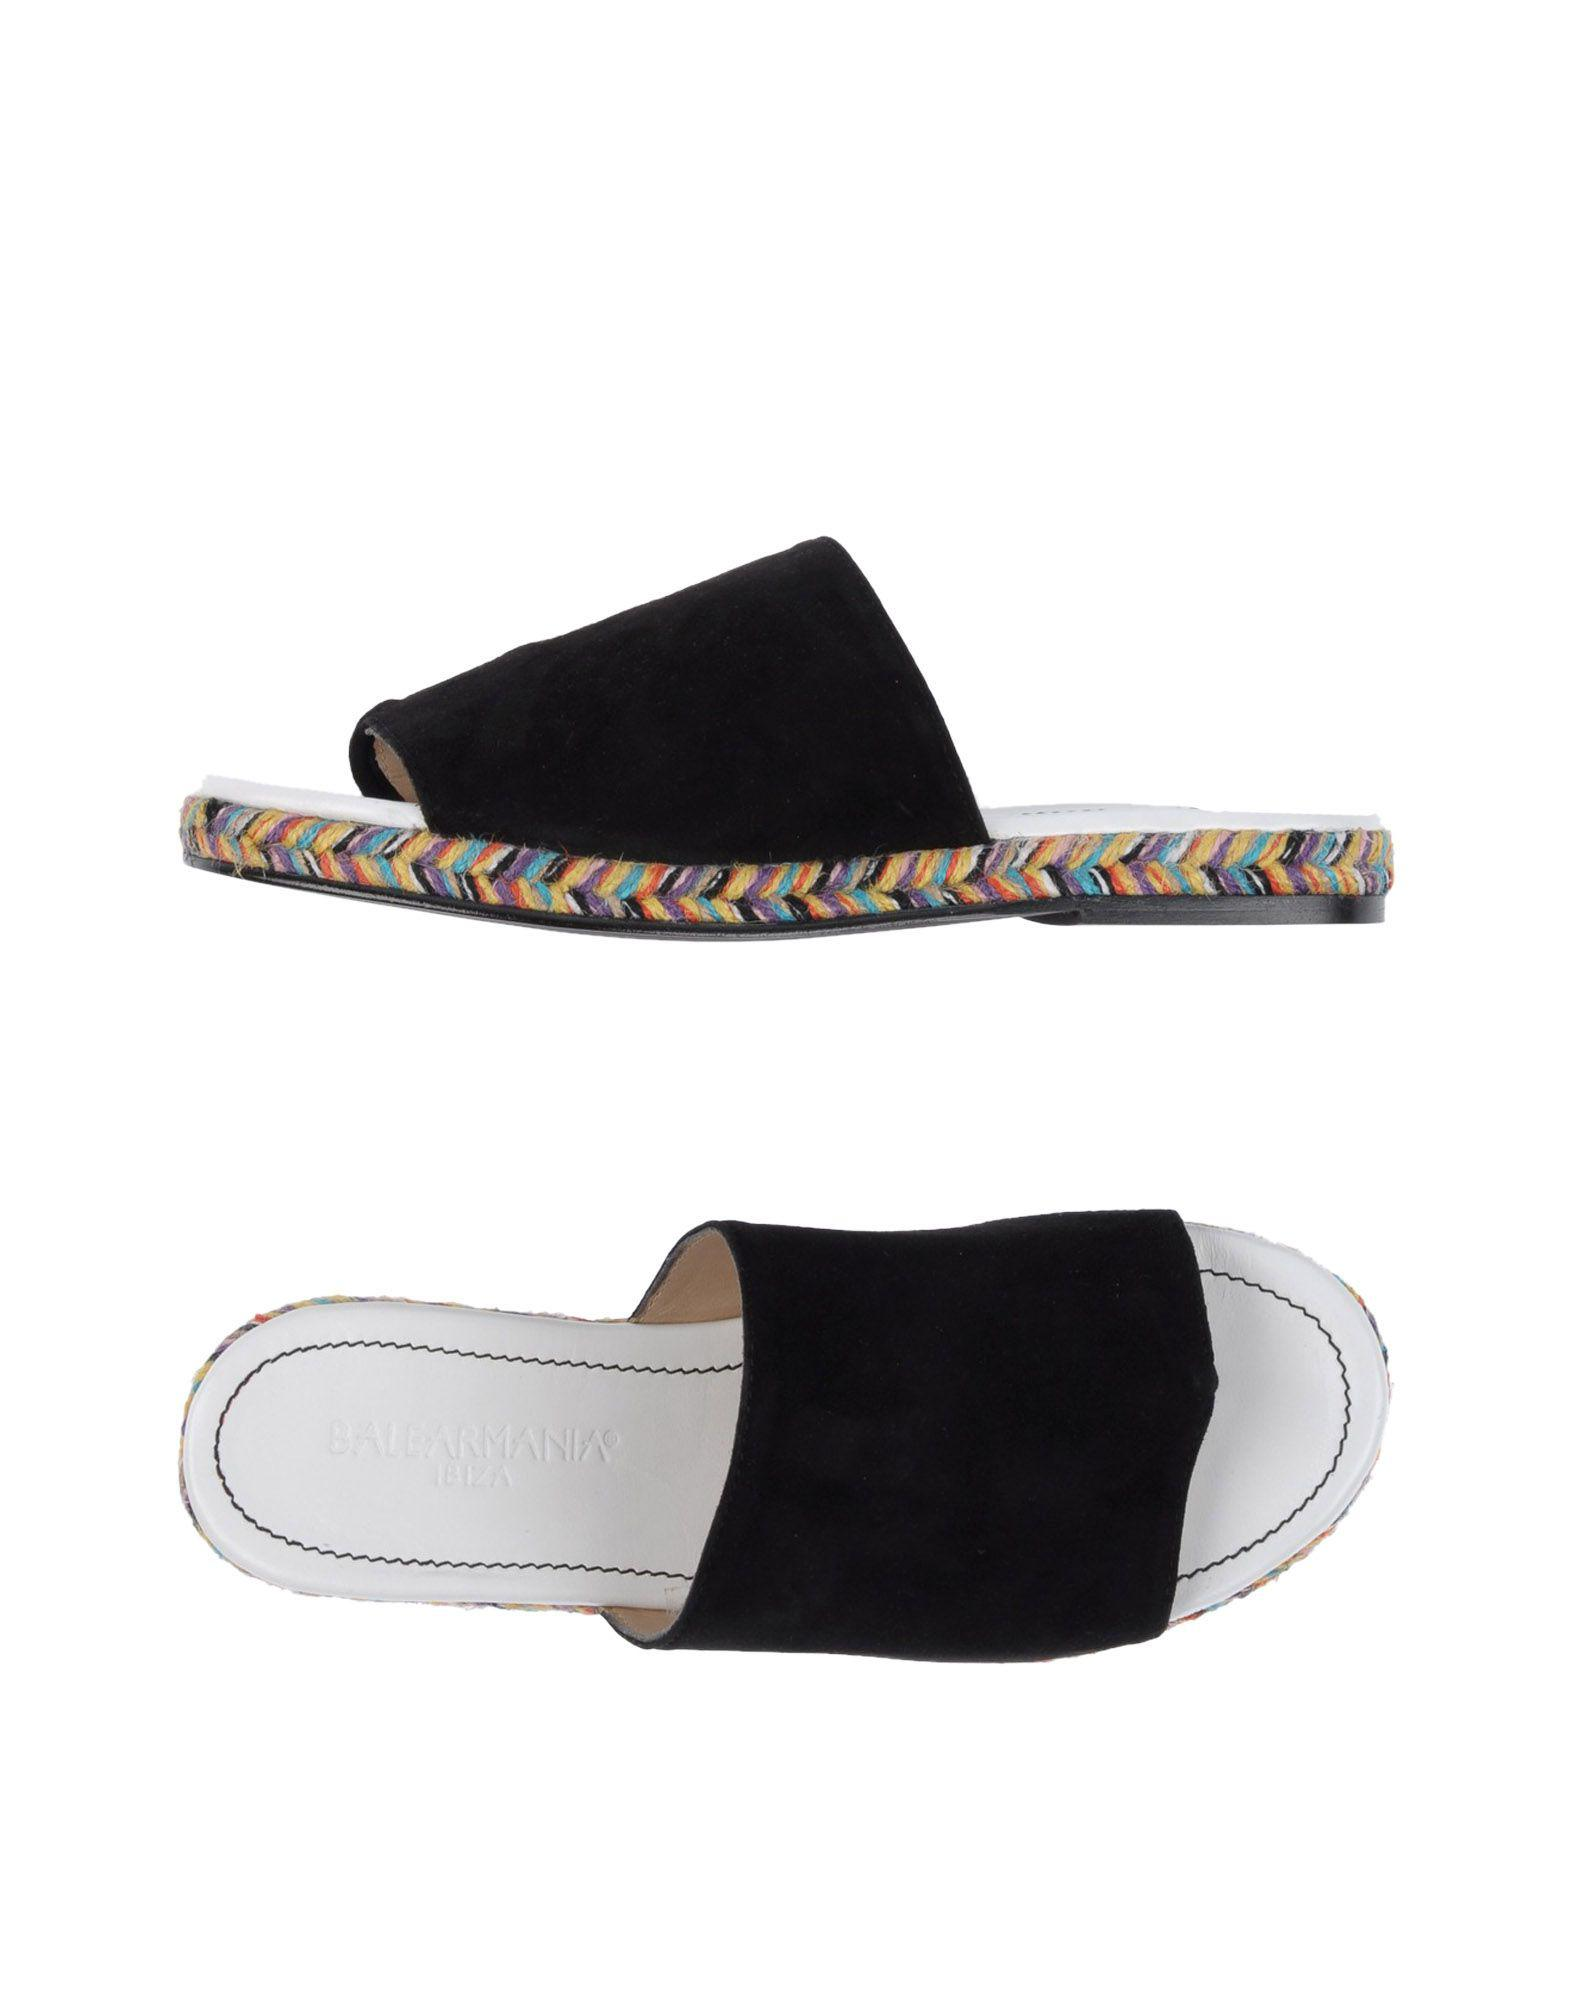 Chaussures - Balear Espadrilles Mania VPSGly